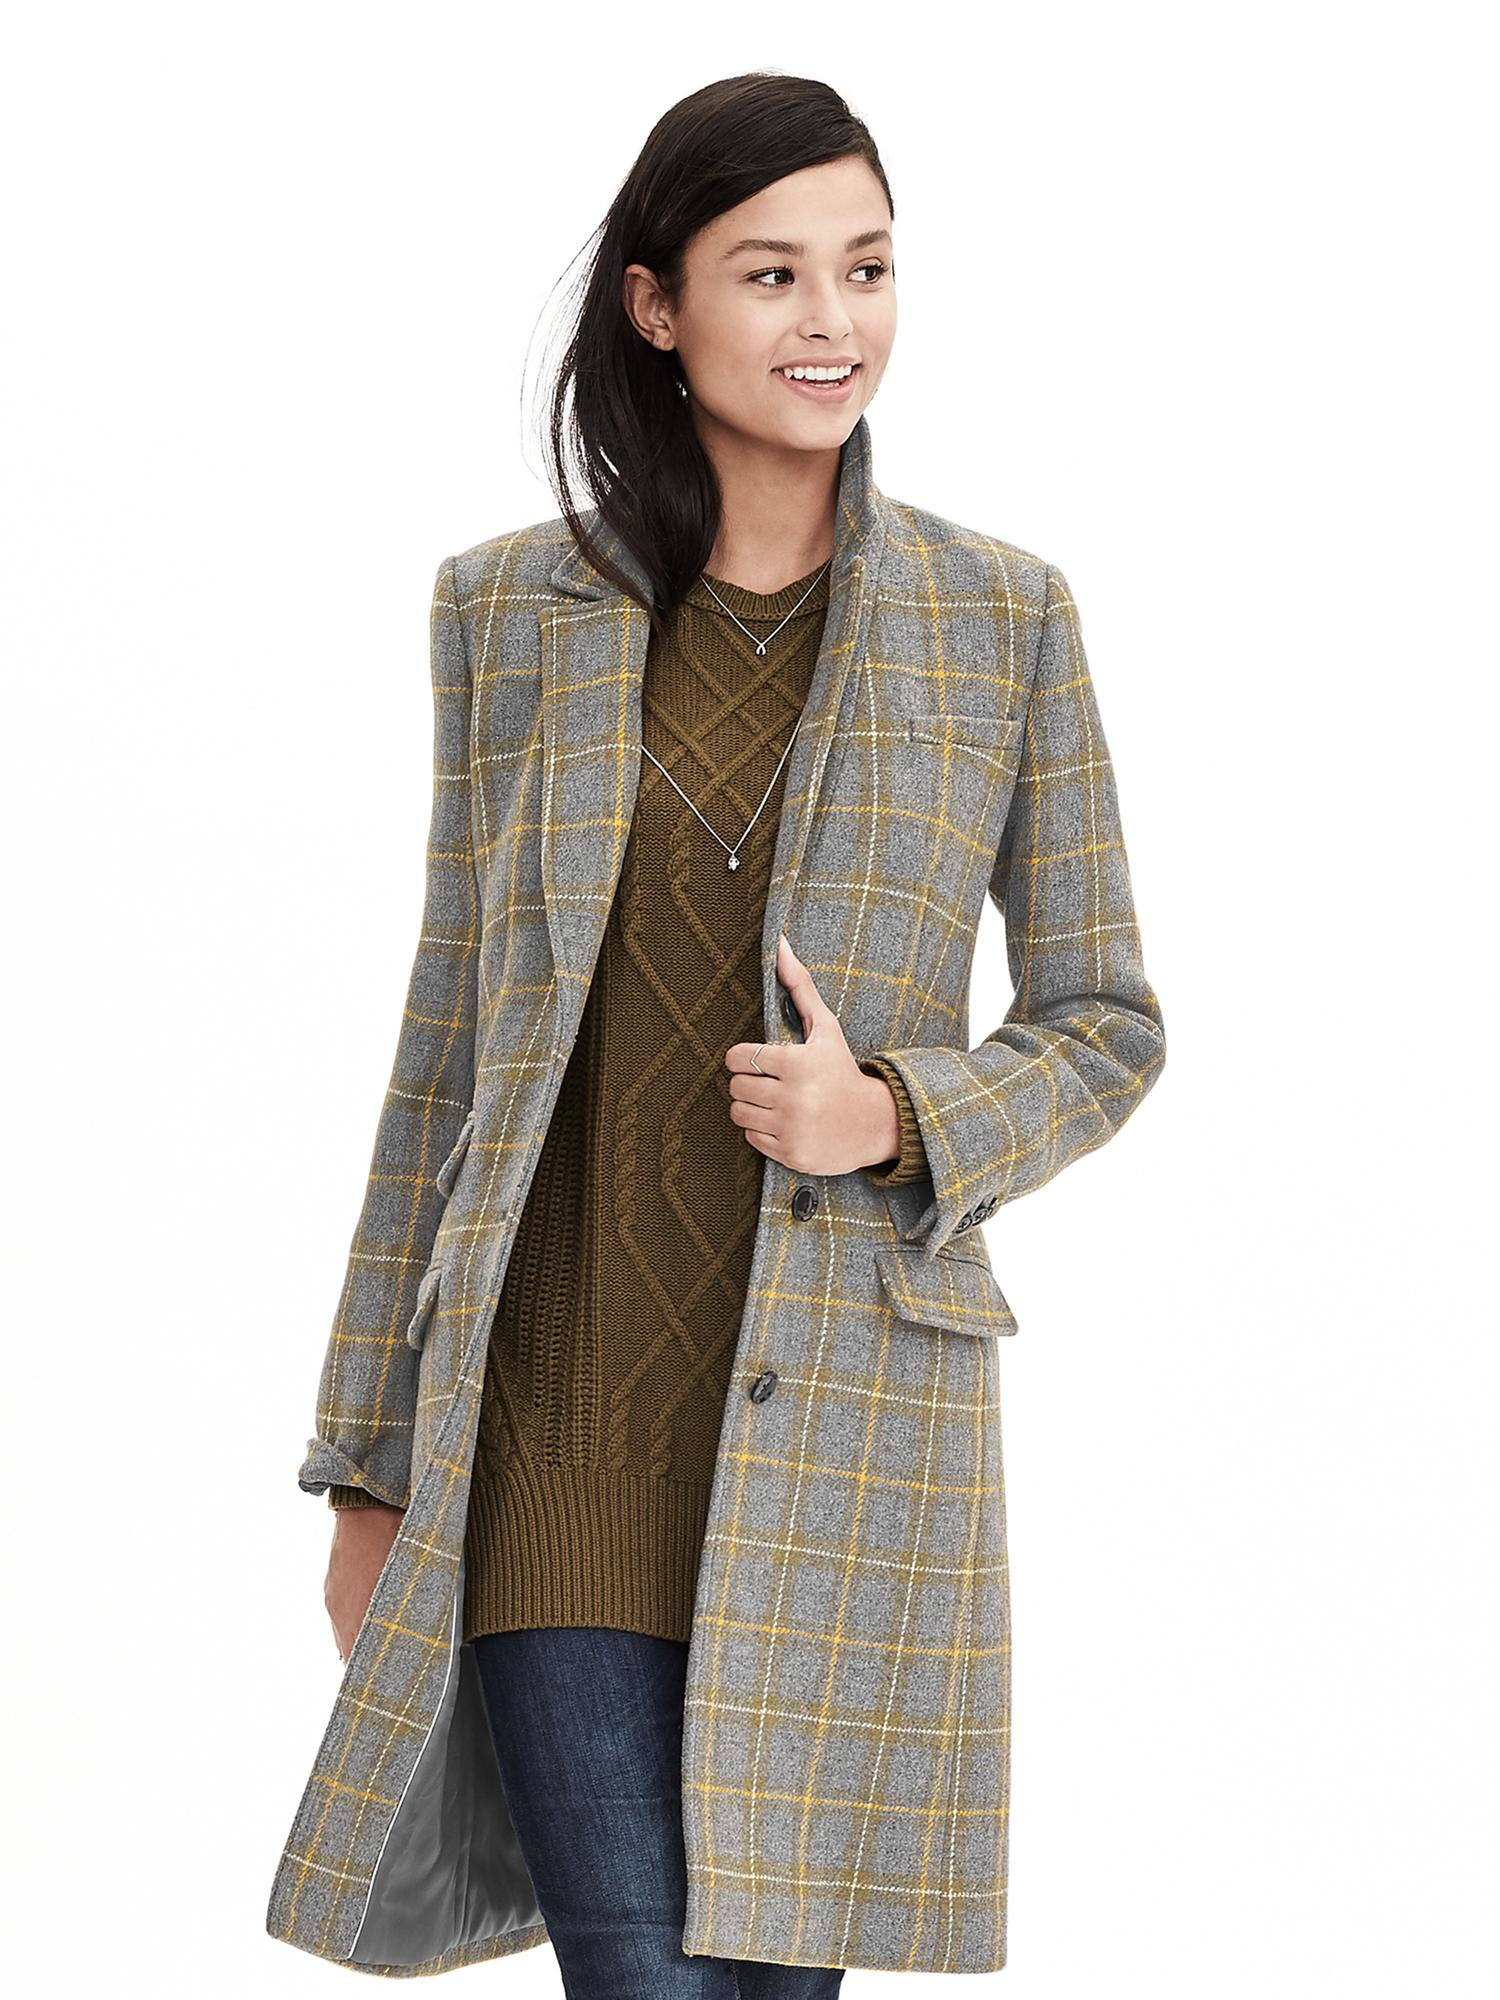 Shop the always fresh and fashionable jackets & coats for men and women at Banana Republic. They are perfect for unpredictable weather and action-packed days. We offer a variety of styles in a wide array of colors and fabrics that feature a flattering and modern fit.